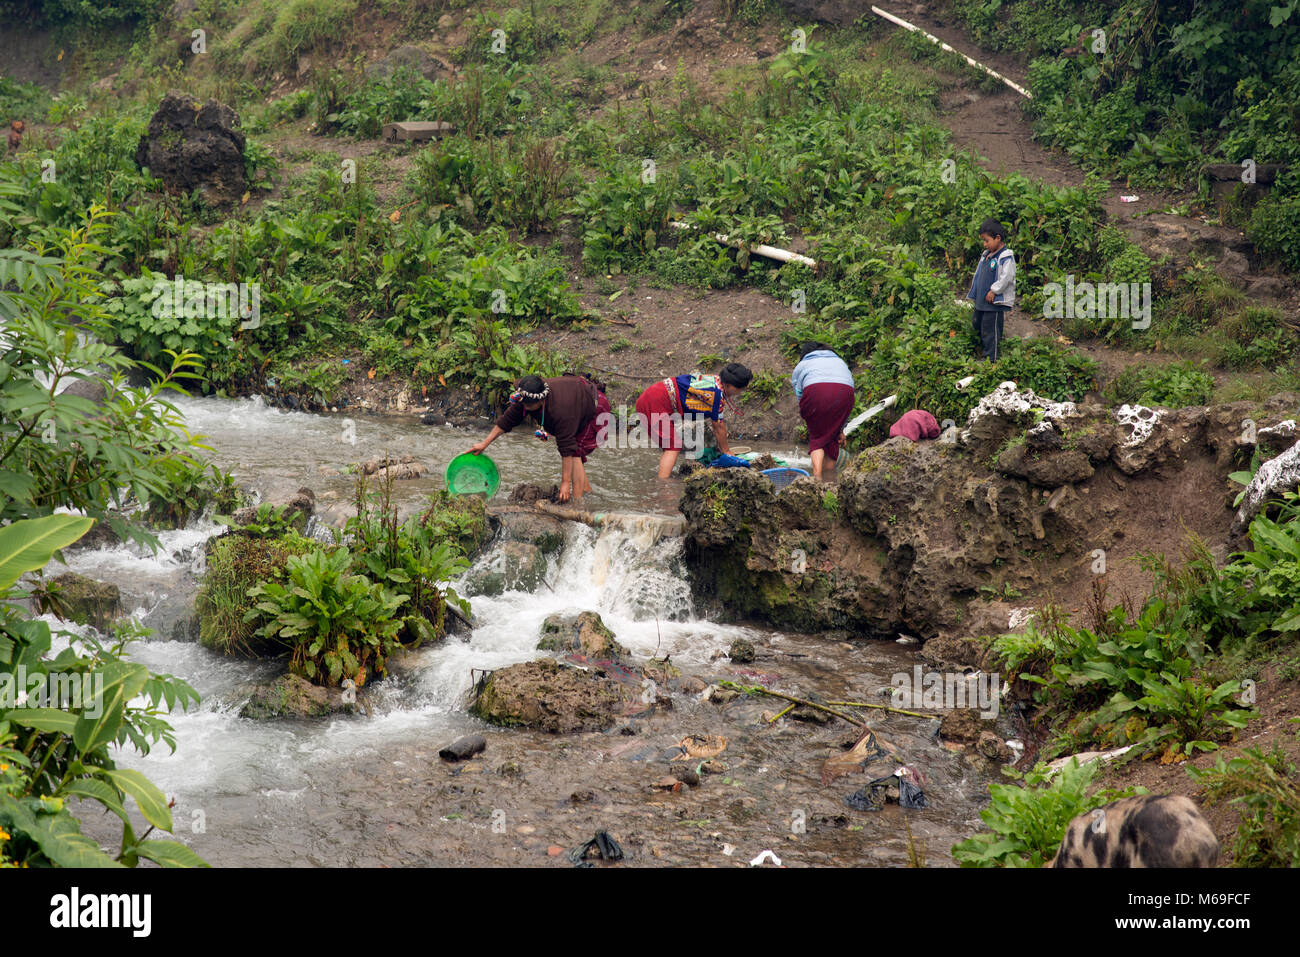 Indigenous ethnic Ixil Maya women doing laundry in a river in San Gaspar Chajul, Ixil Triangle, Guatemala. - Stock Image